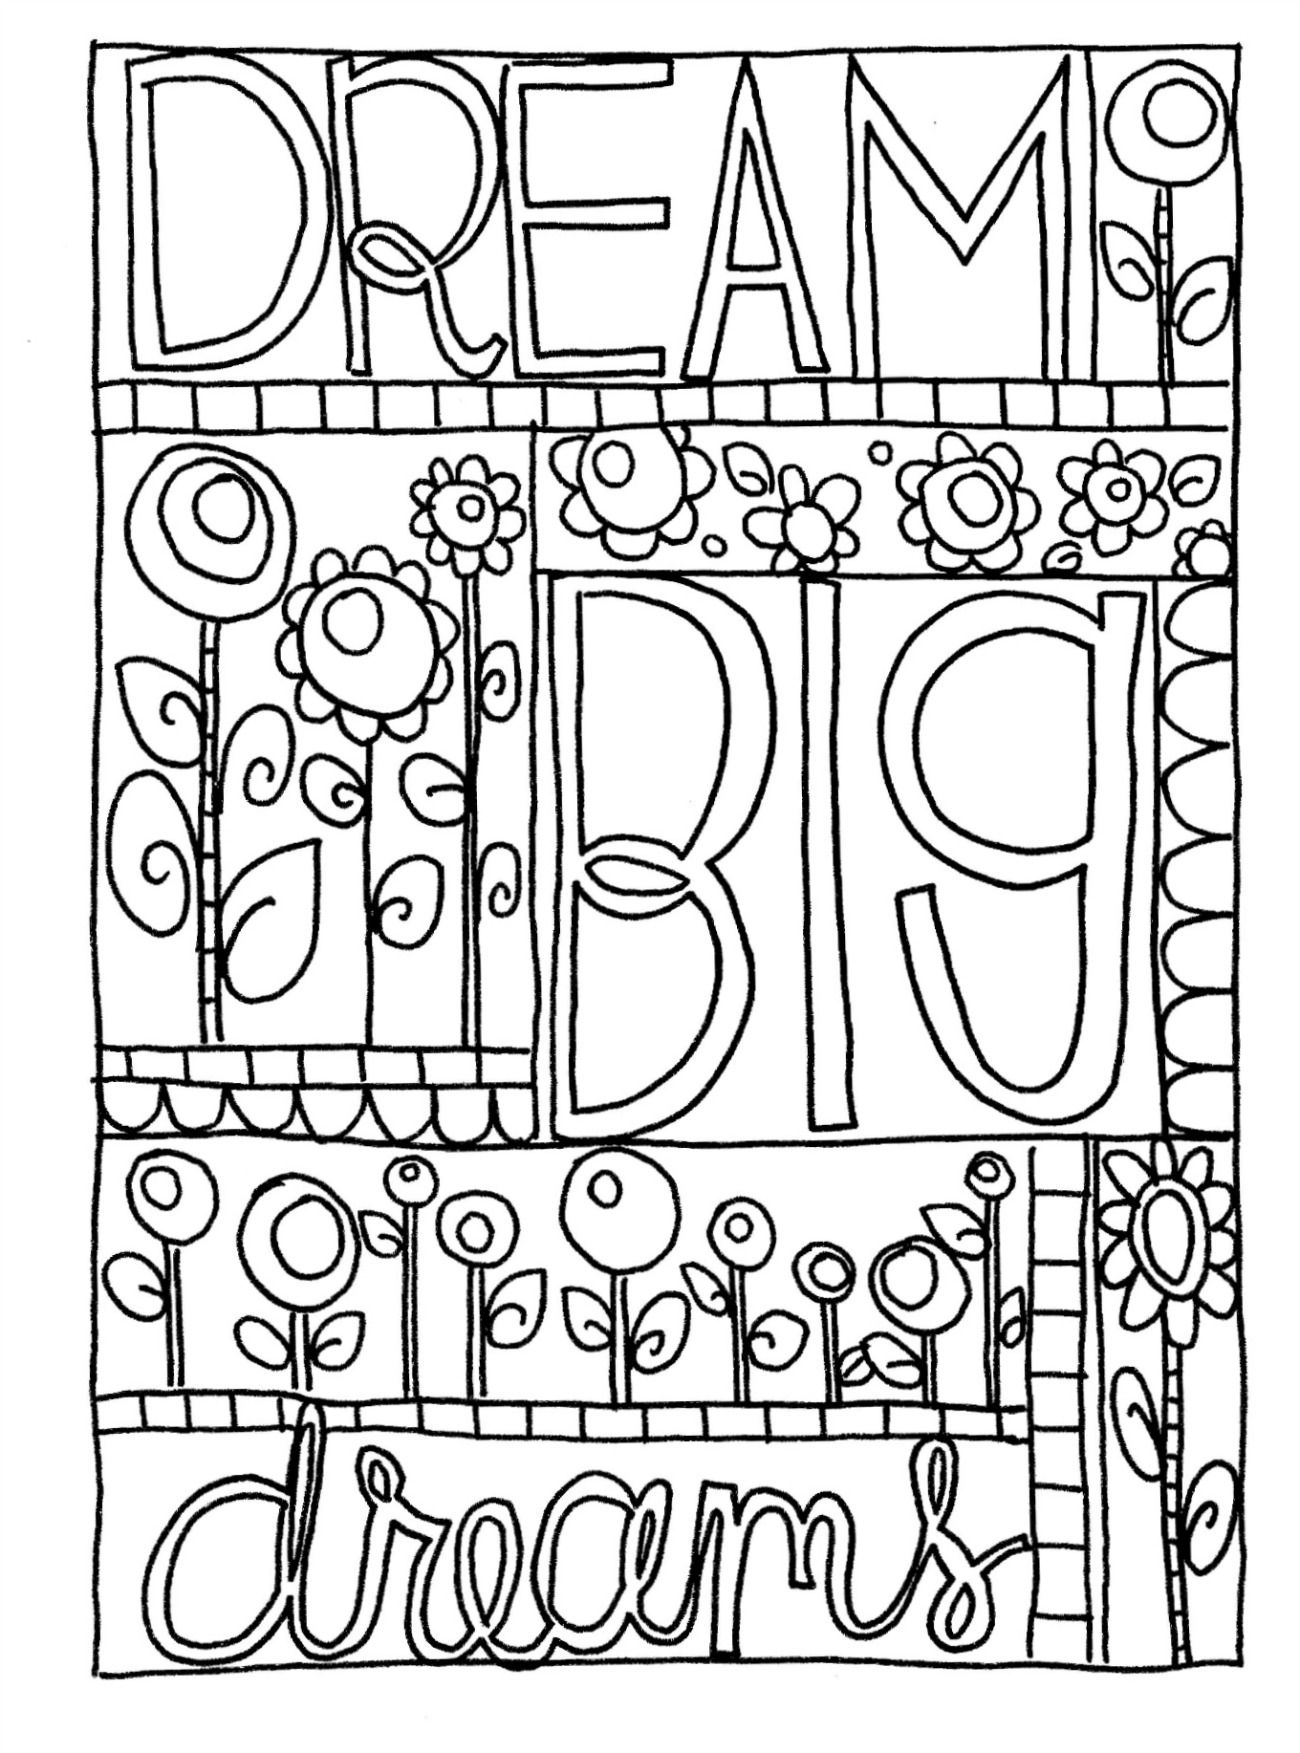 free doodle art to print and color doodle coloring pages best coloring pages for kids free to color print and doodle art